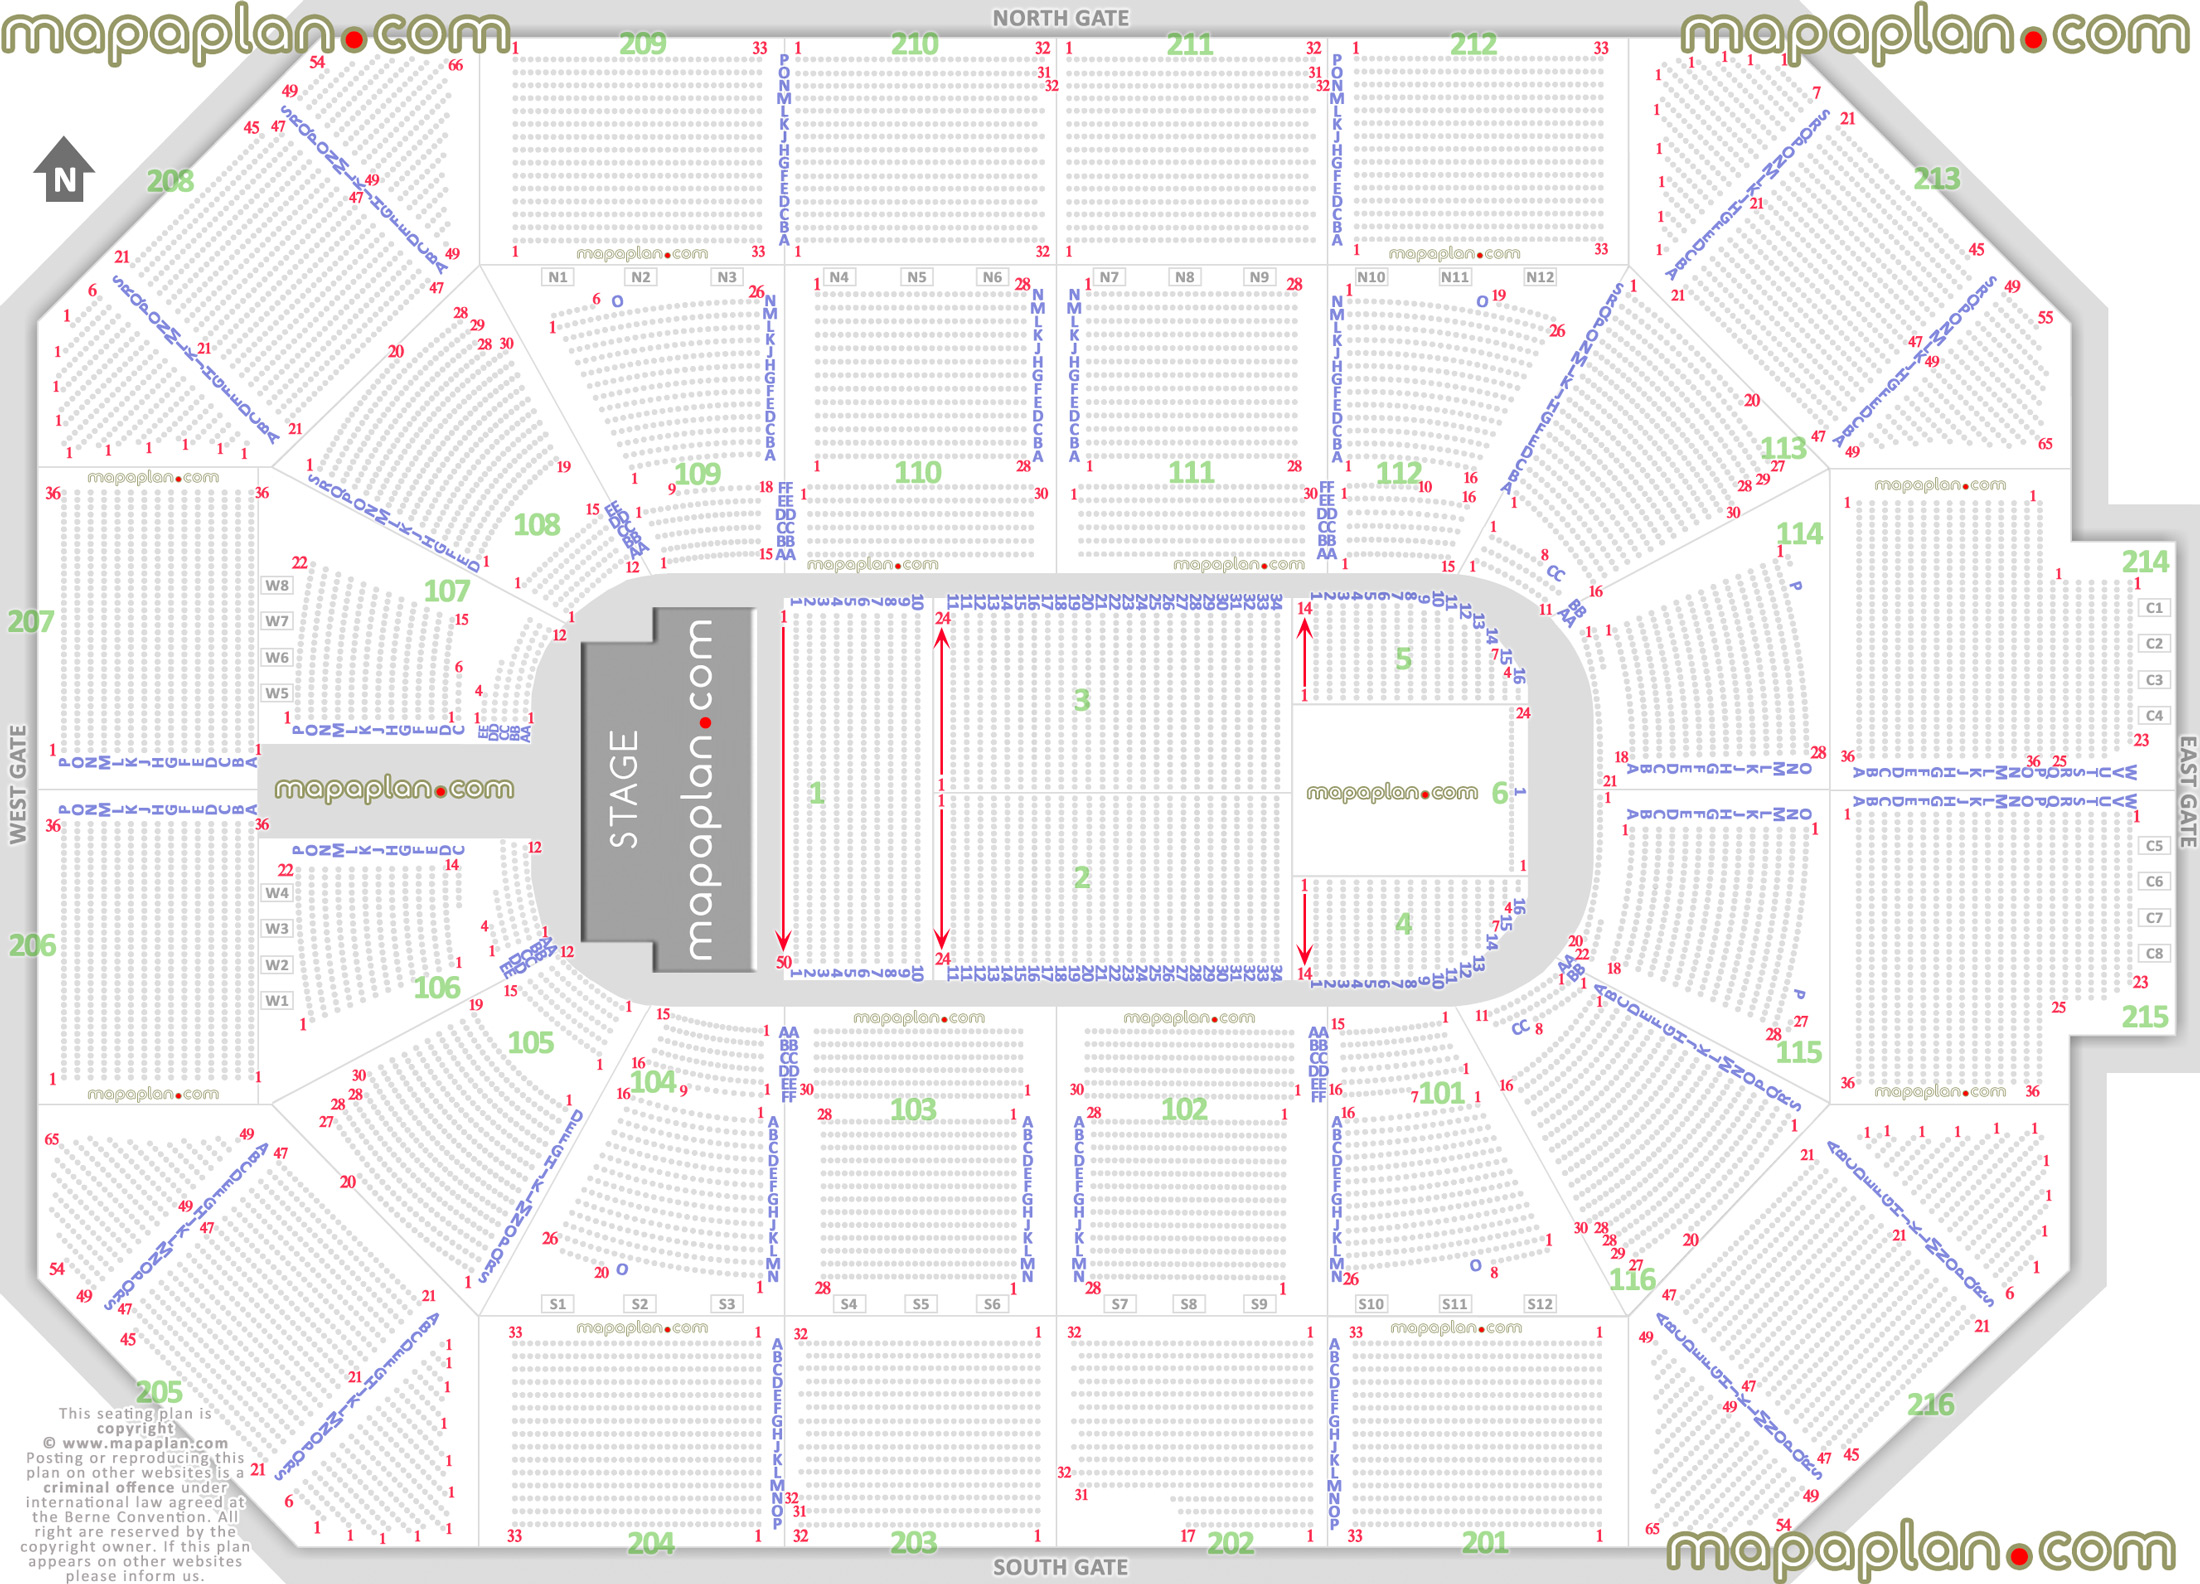 Allstate Arena Map Allstate Arena   Detailed seat & row numbers end stage concert